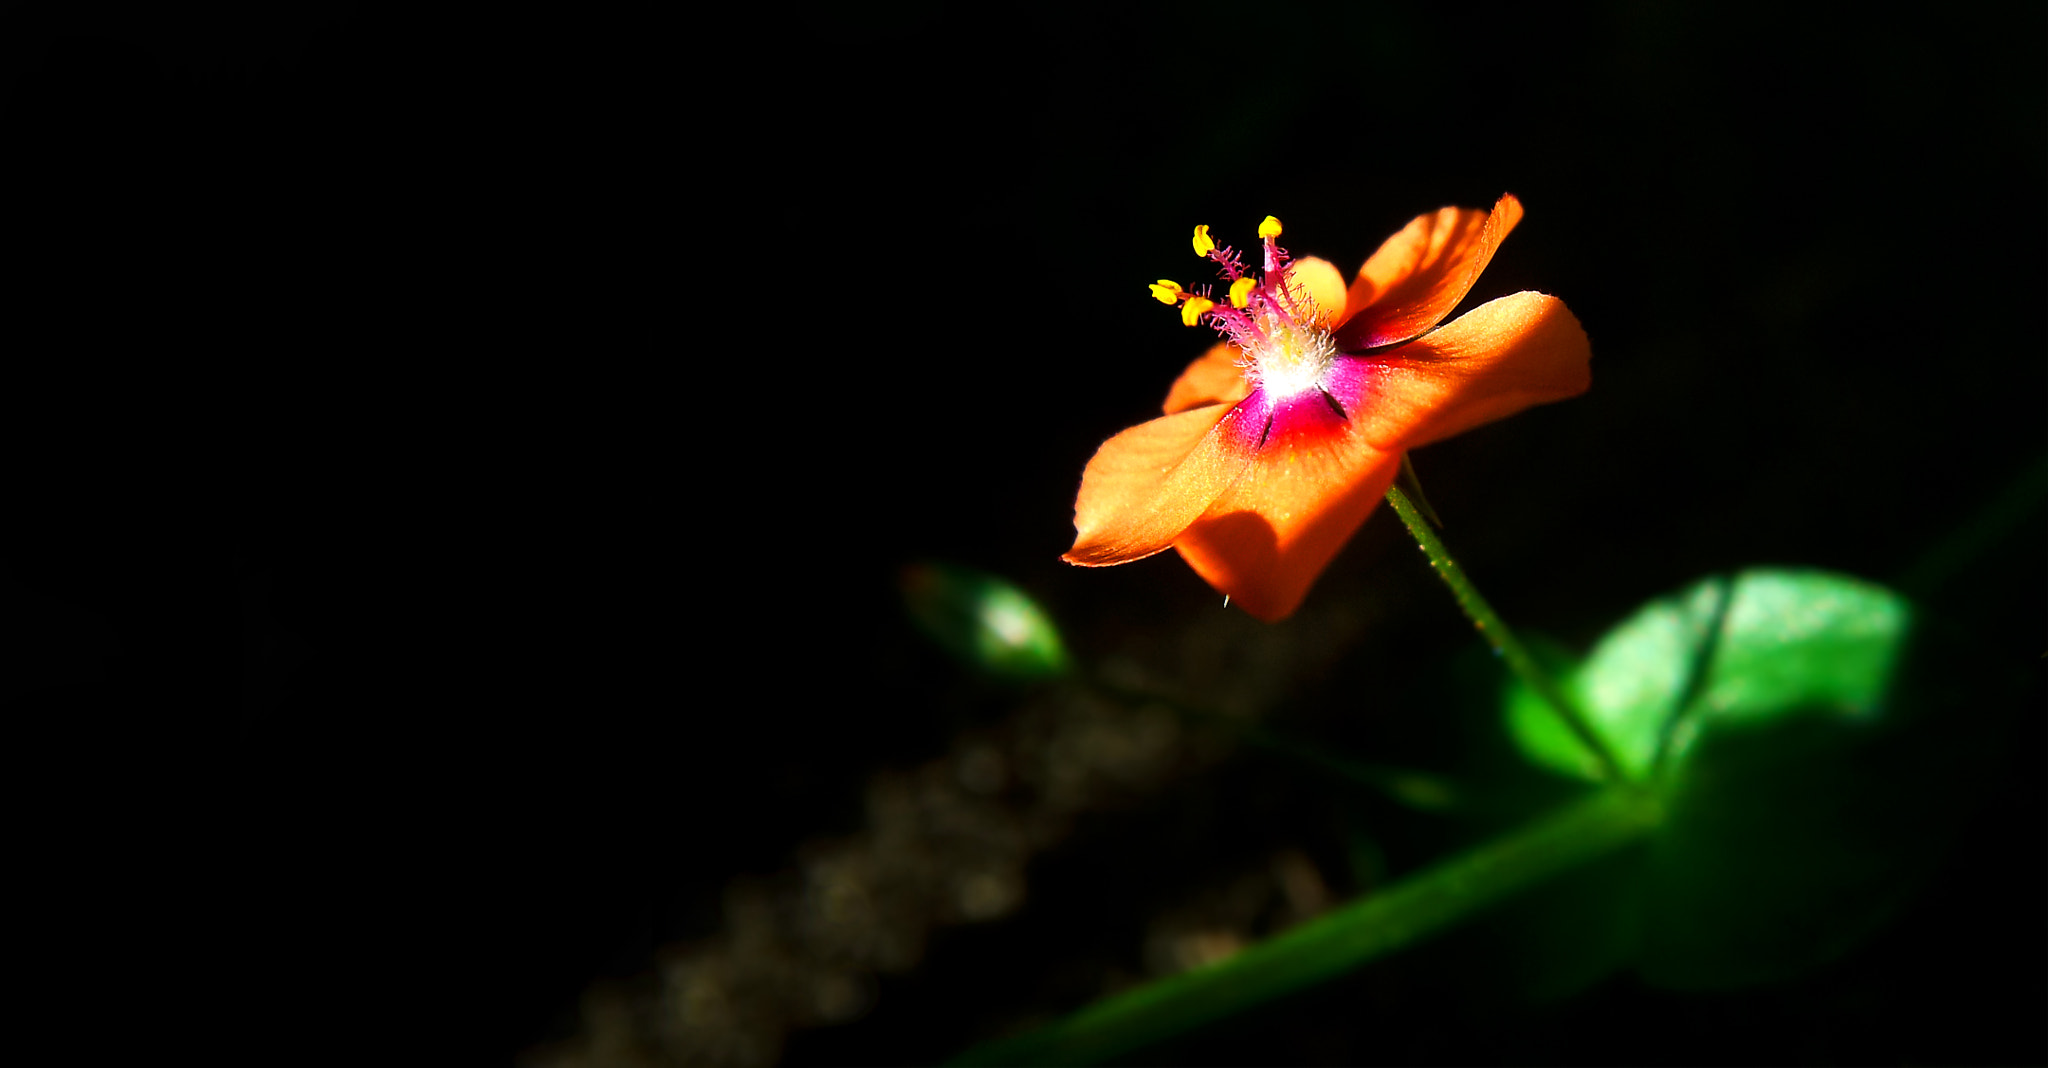 Photograph Macro - tiny shy flower by Jong Shin Lee on 500px